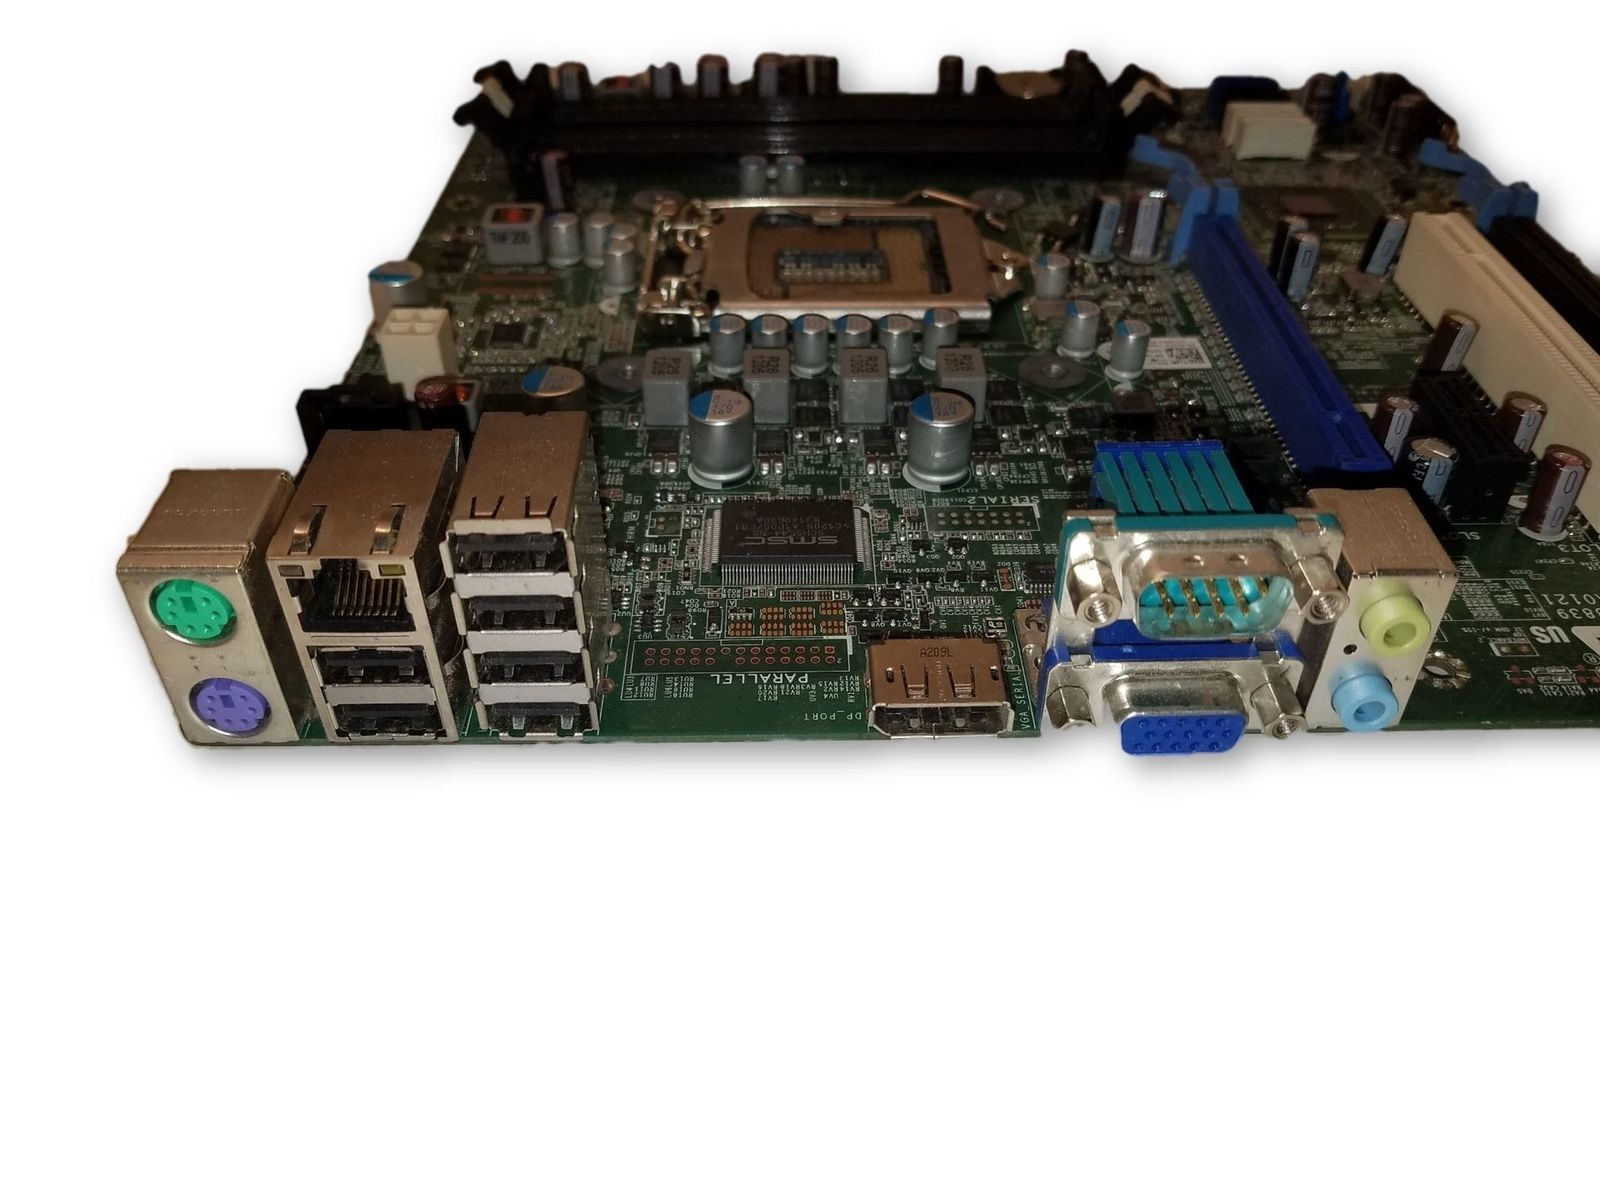 Dell OEM Optiplex 790 Mid Tower Motherboard and 13 similar items